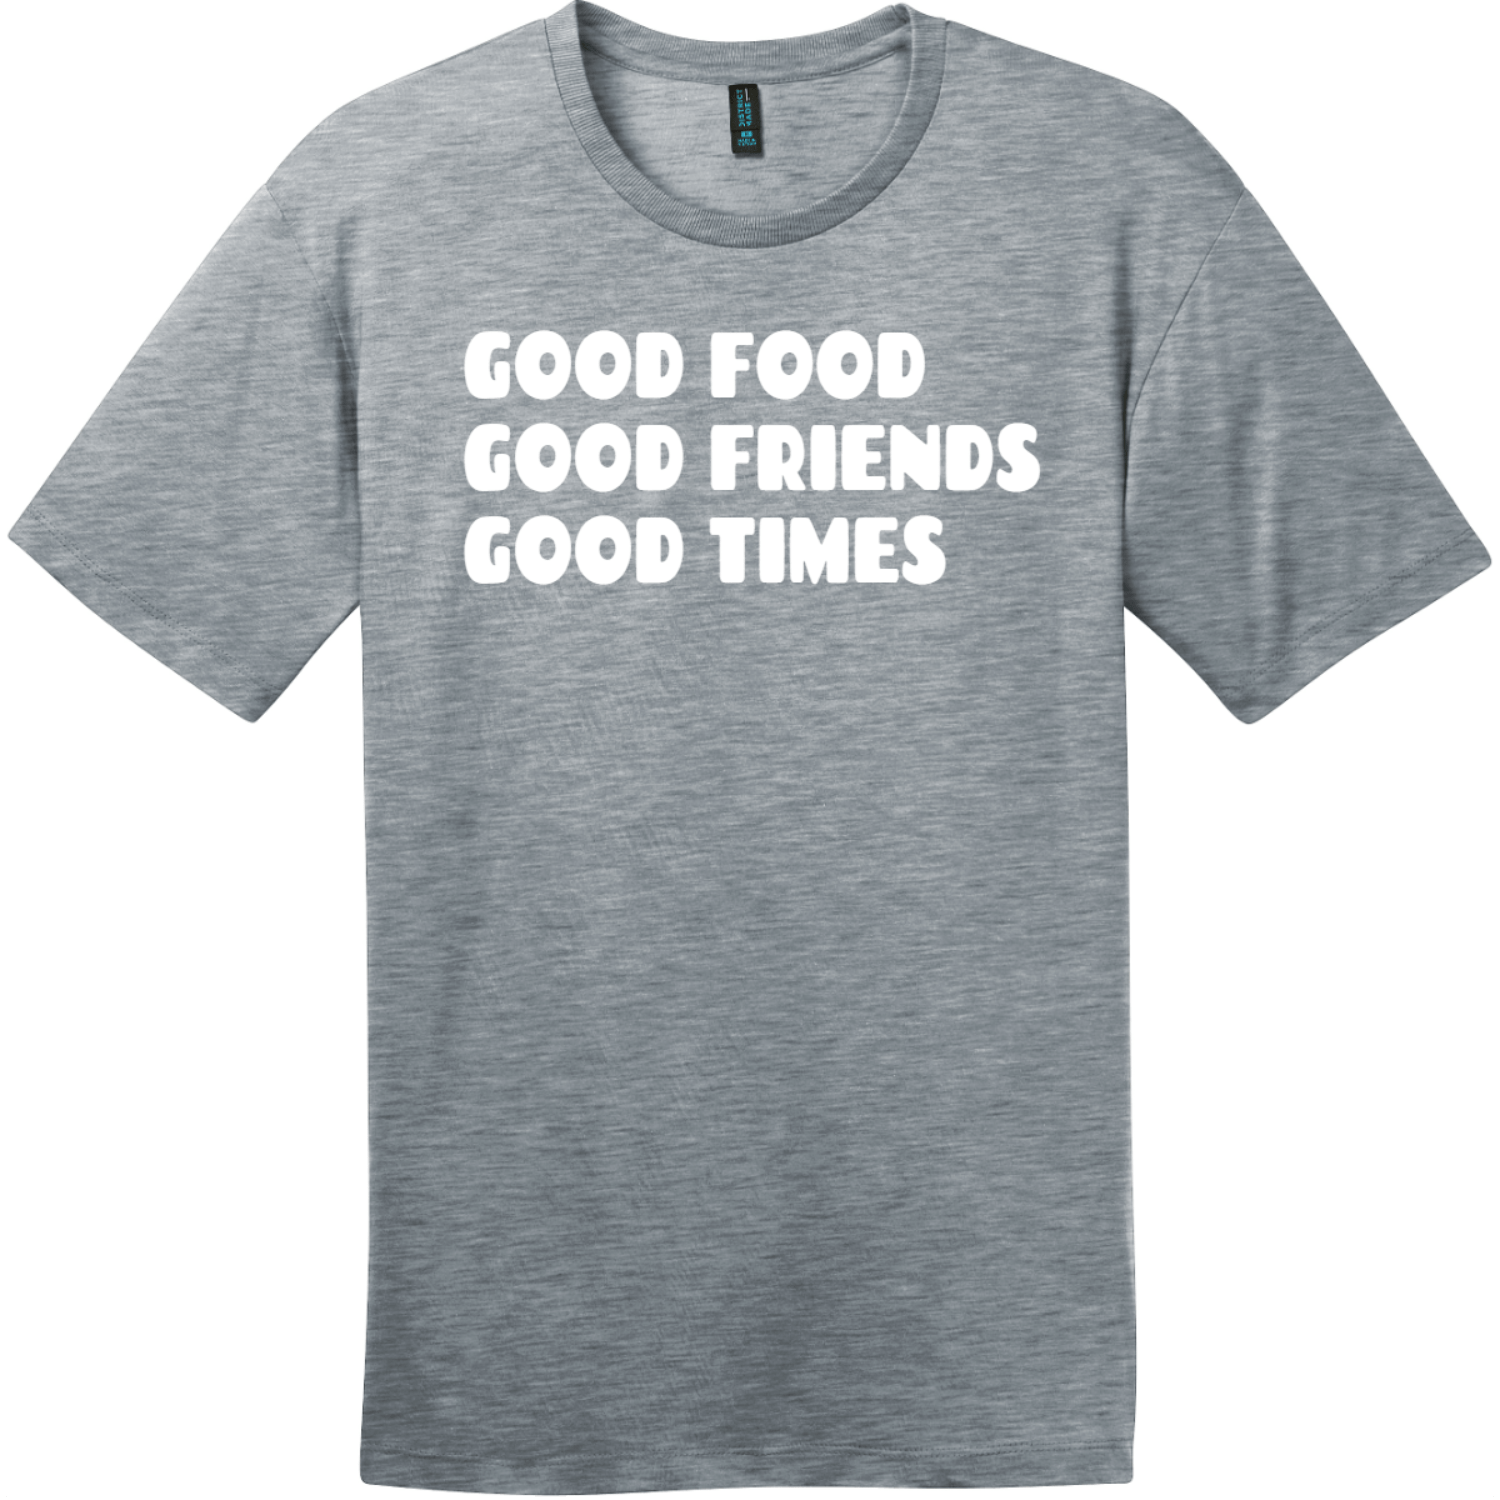 Good Food Good Friends Good Times T-Shirt Heathered Steel District Perfect Weight Tee DT104